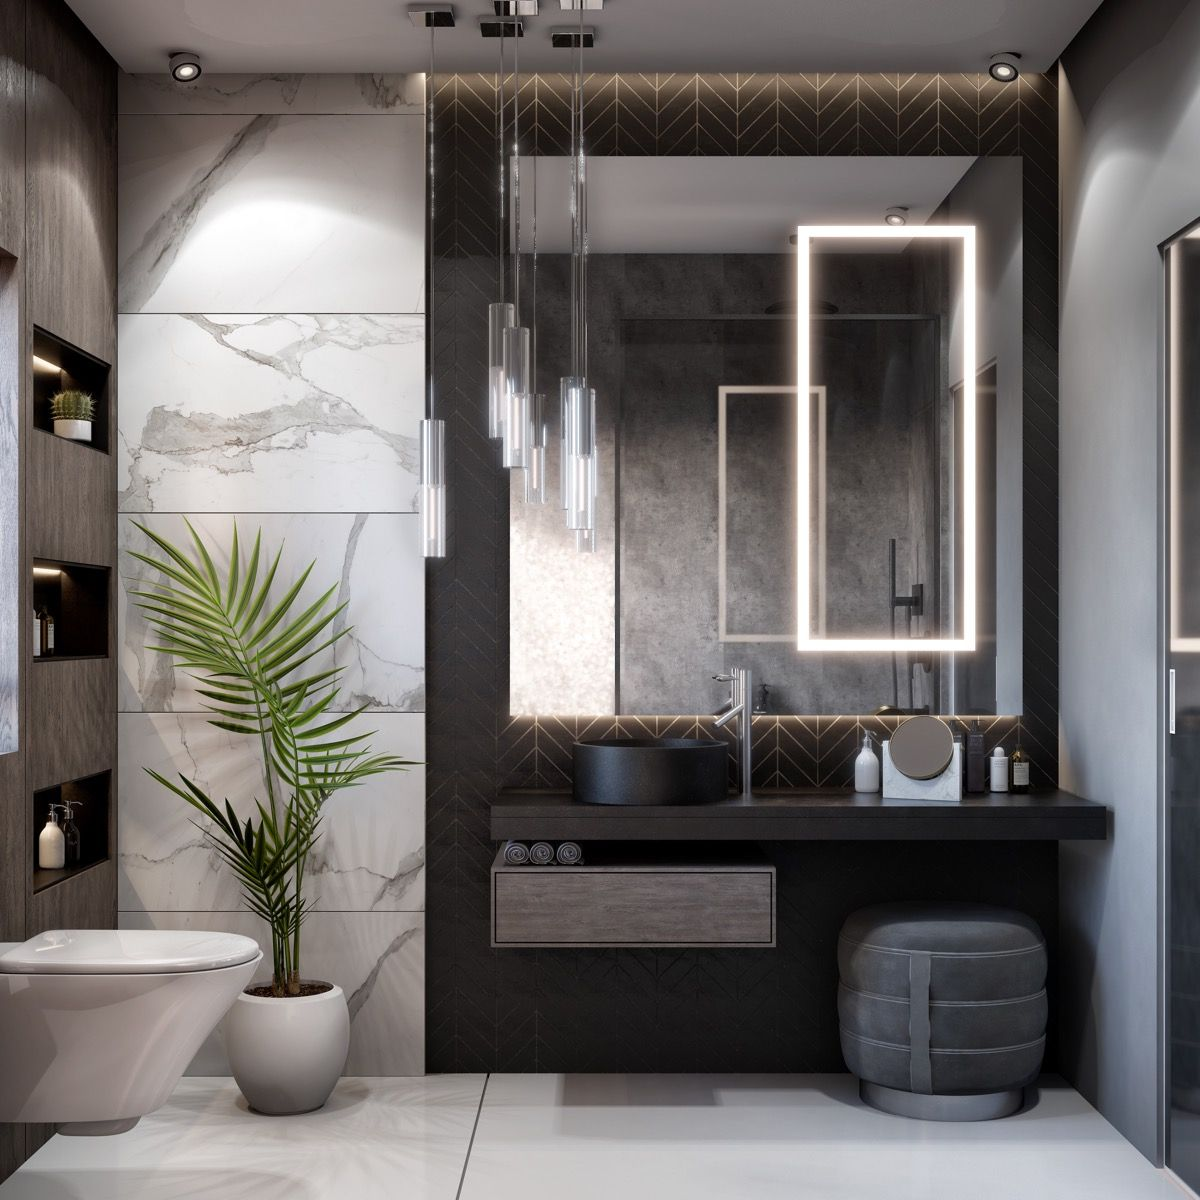 Photo of 51 Modern Bathroom Design Ideas Plus Tips On How To Accessorize Yours